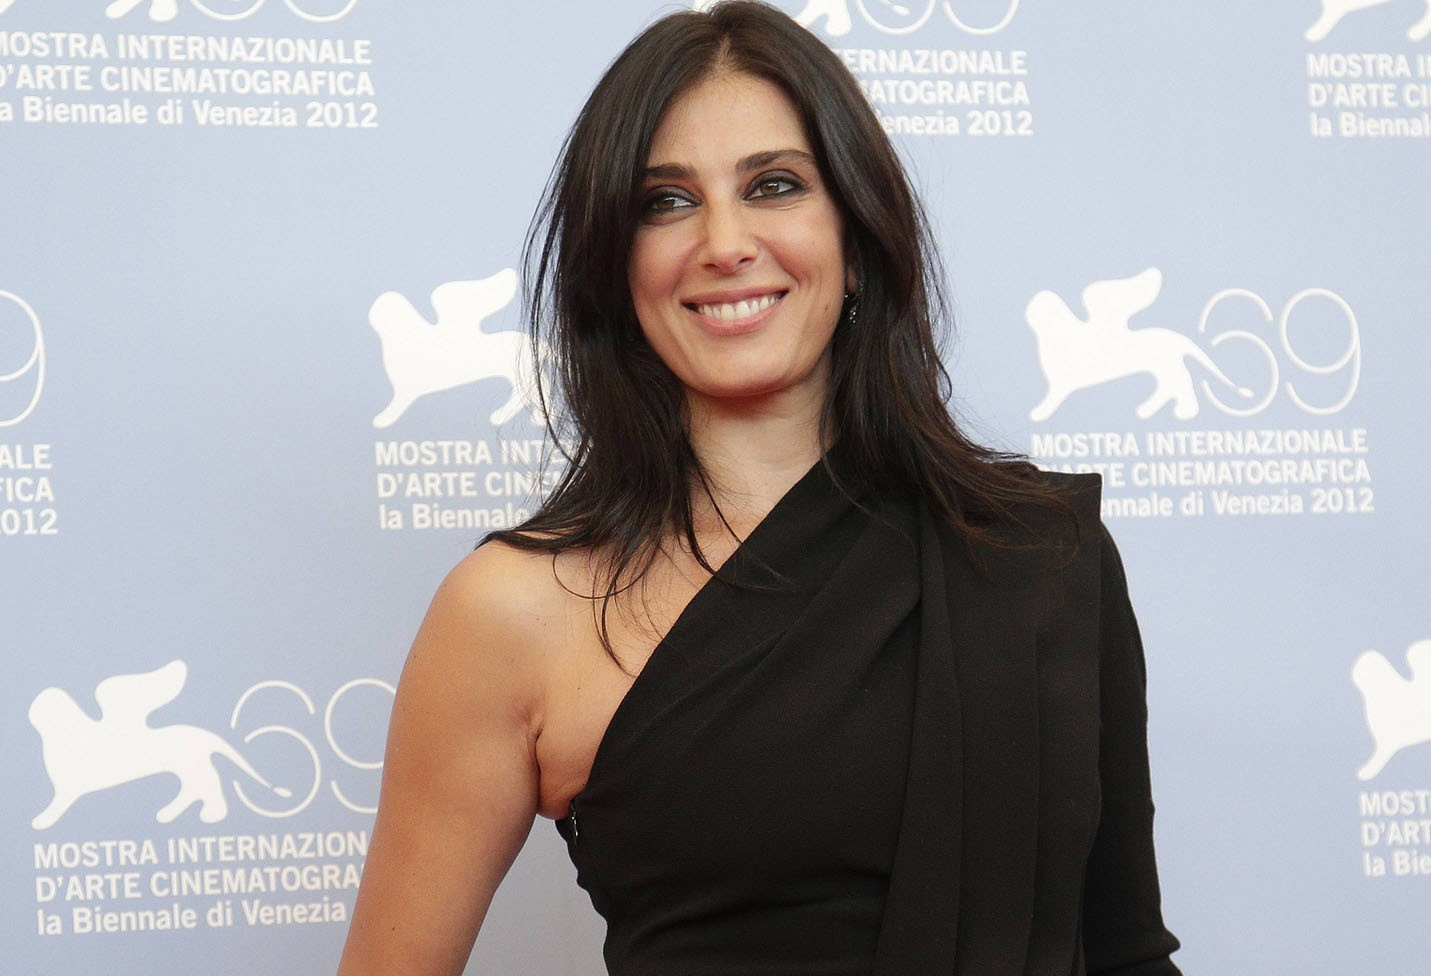 The 44-year old daughter of father Antoine Labaki and mother Antoinette Labaki Nadine Labaki in 2018 photo. Nadine Labaki earned a  million dollar salary - leaving the net worth at 8 million in 2018